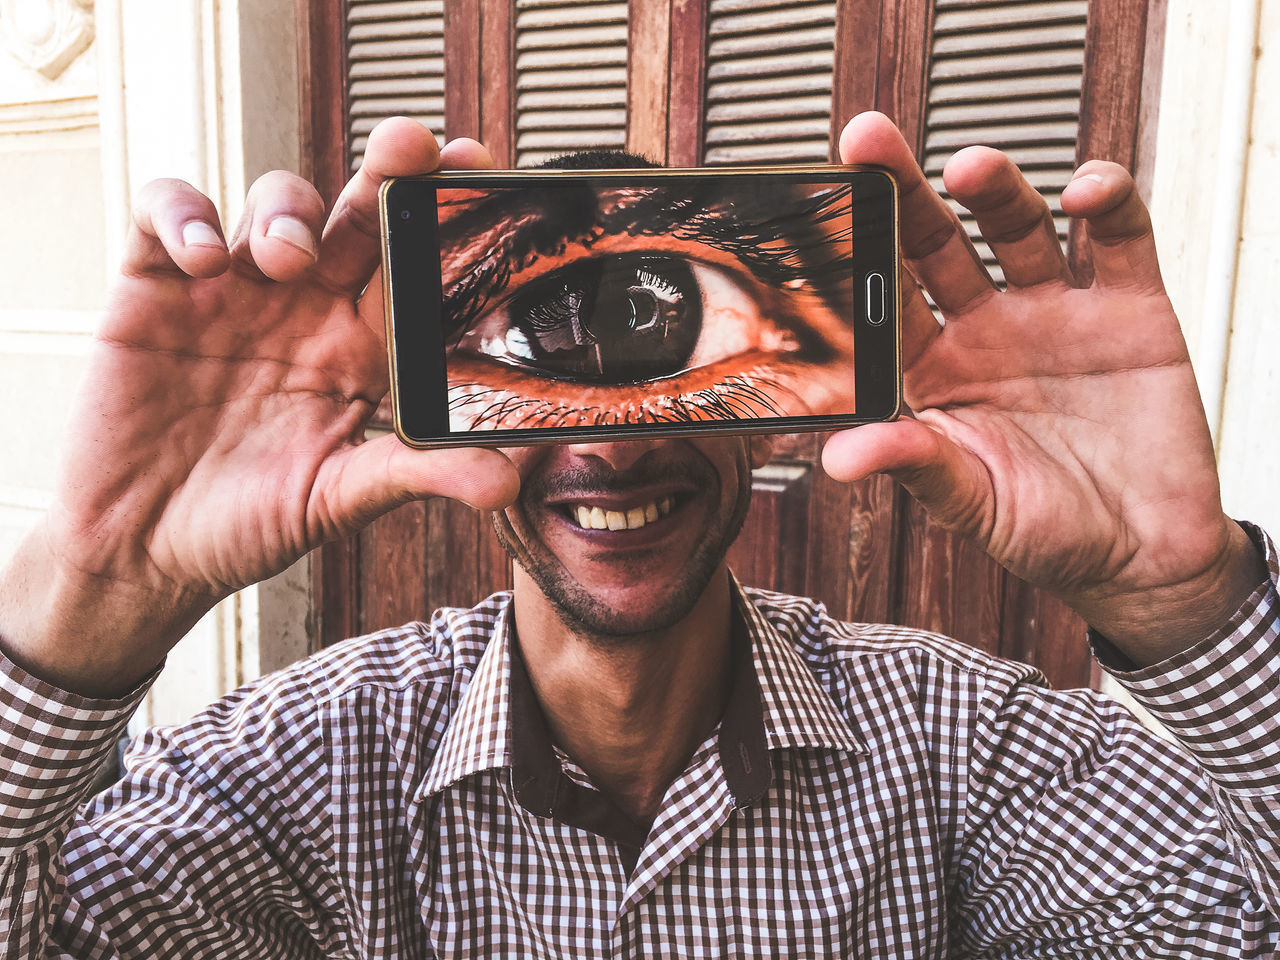 Adult Adults Only Big Eye Cyclop Cheerful Close-up Exceptional Photographs EyeEm Best Shots Cyclops Full Screen Funny Happiness Headshot Holding Hands Human Hand Mobile Conversations Mobile Phone One Man Only One Person Popular Photos Portrait Smiling Wireless Technology Young Adult Cyclopes